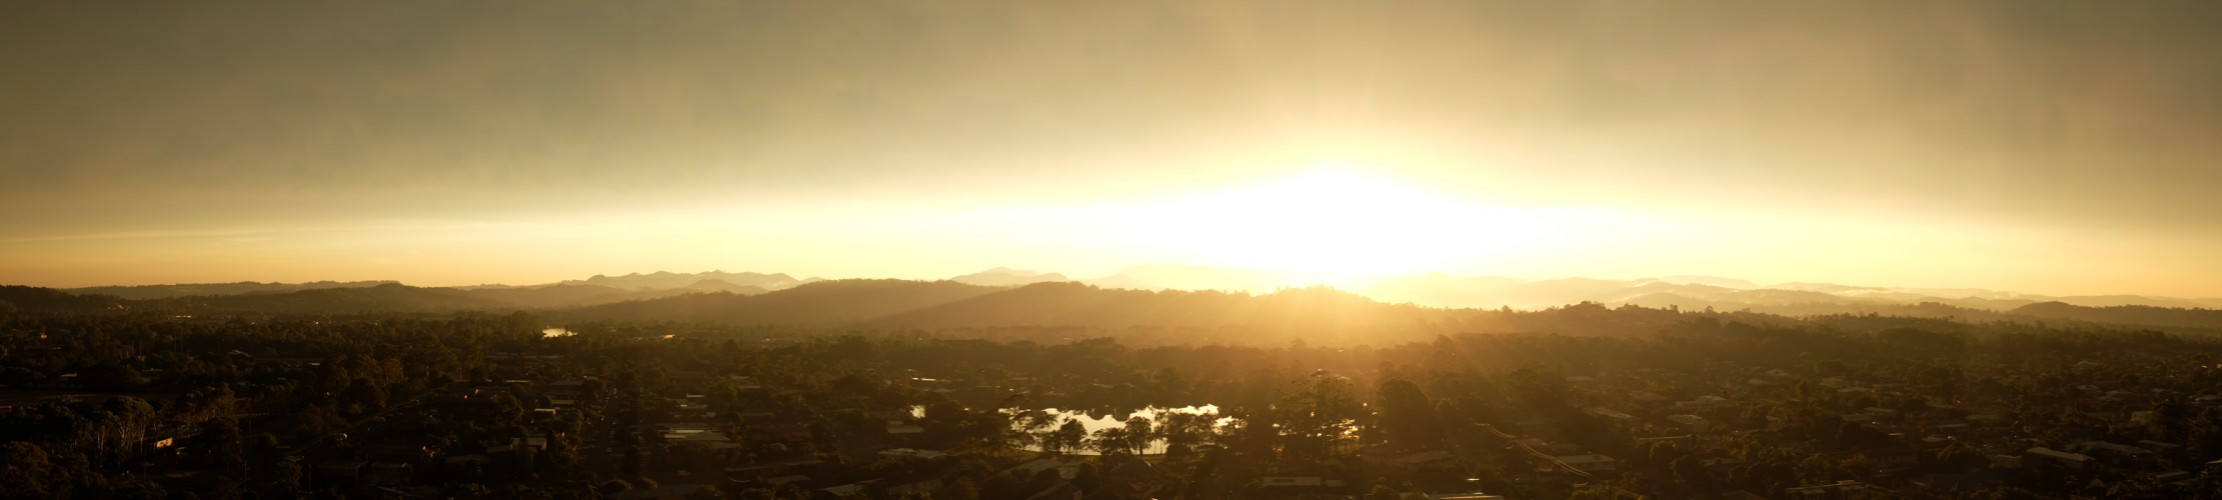 Amazing sunset over the Gold Coast hinterland